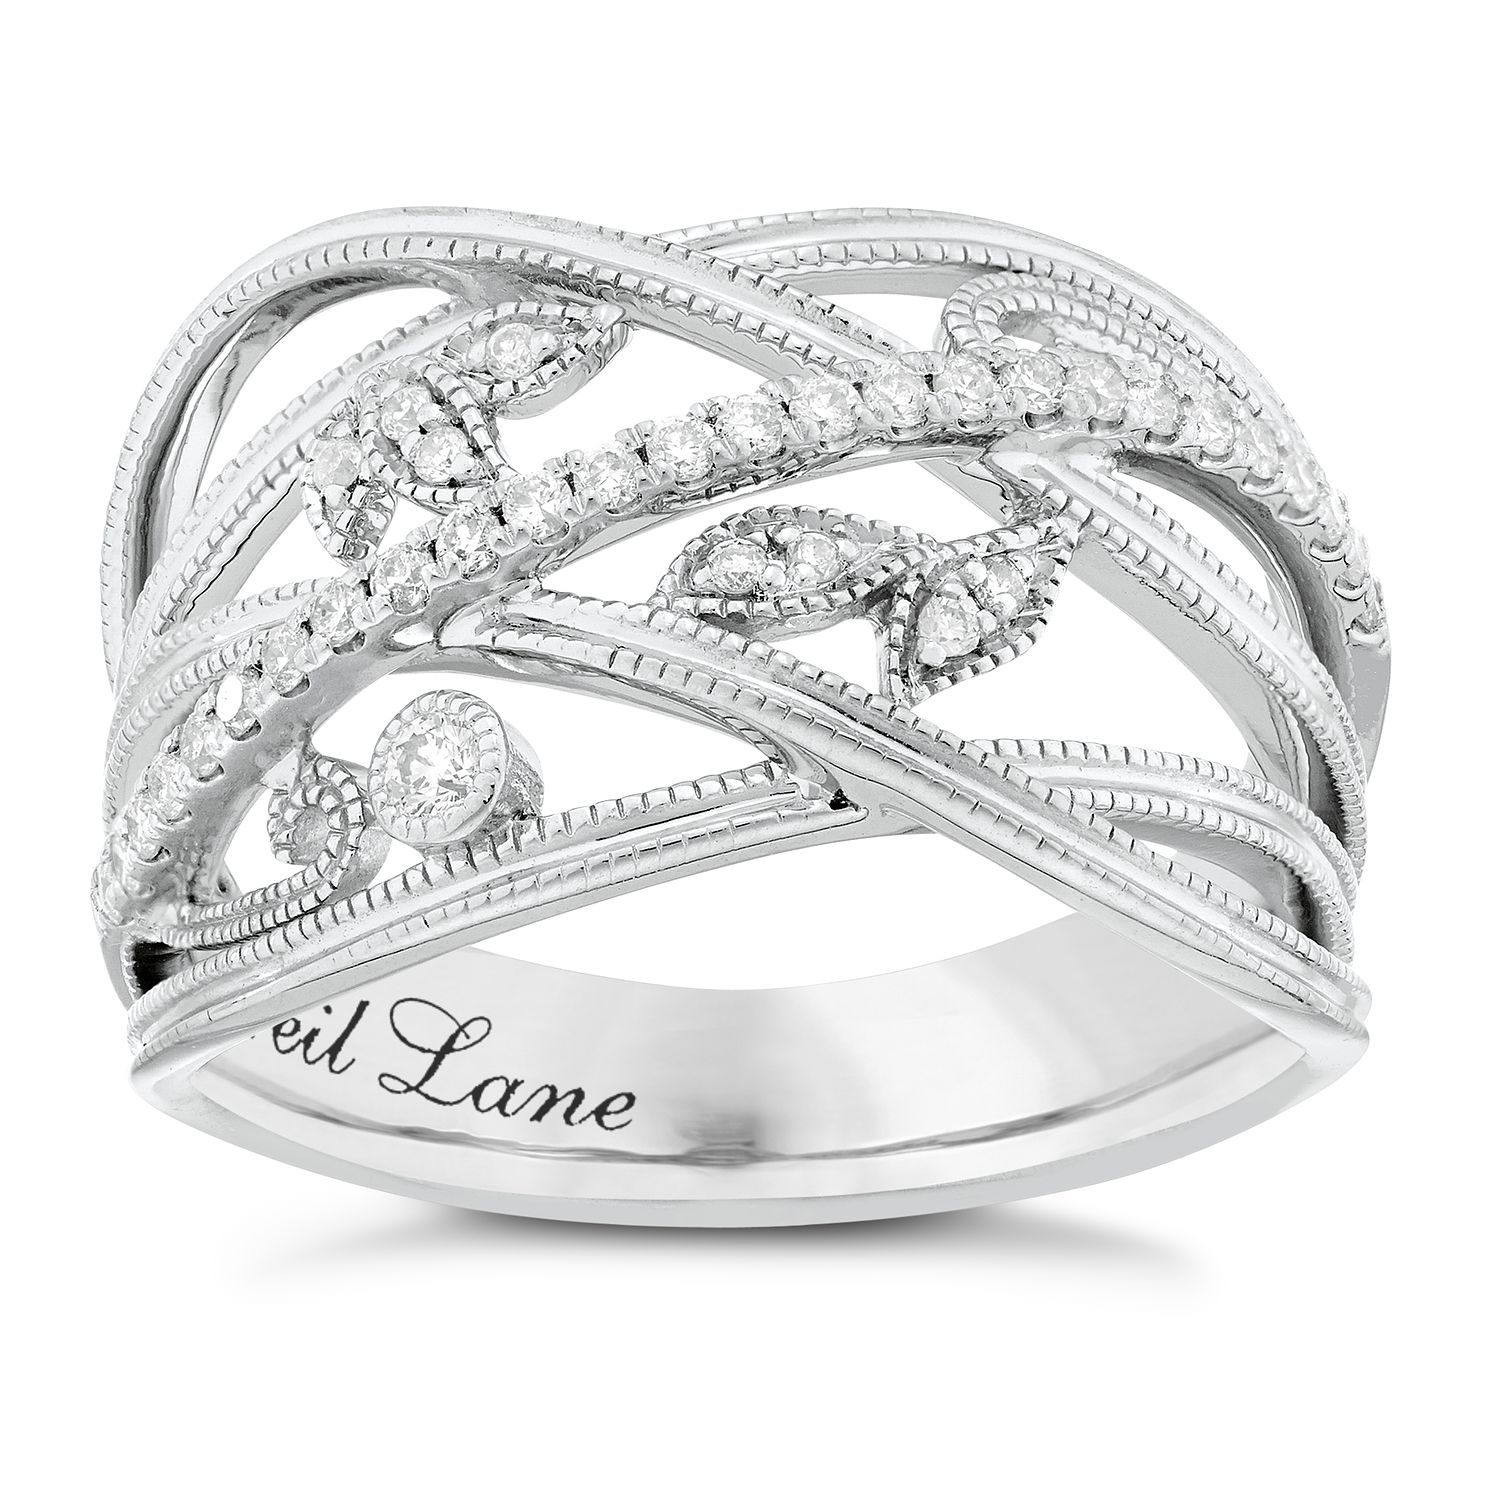 jewellery anniversary eric diamond by rings americus designs